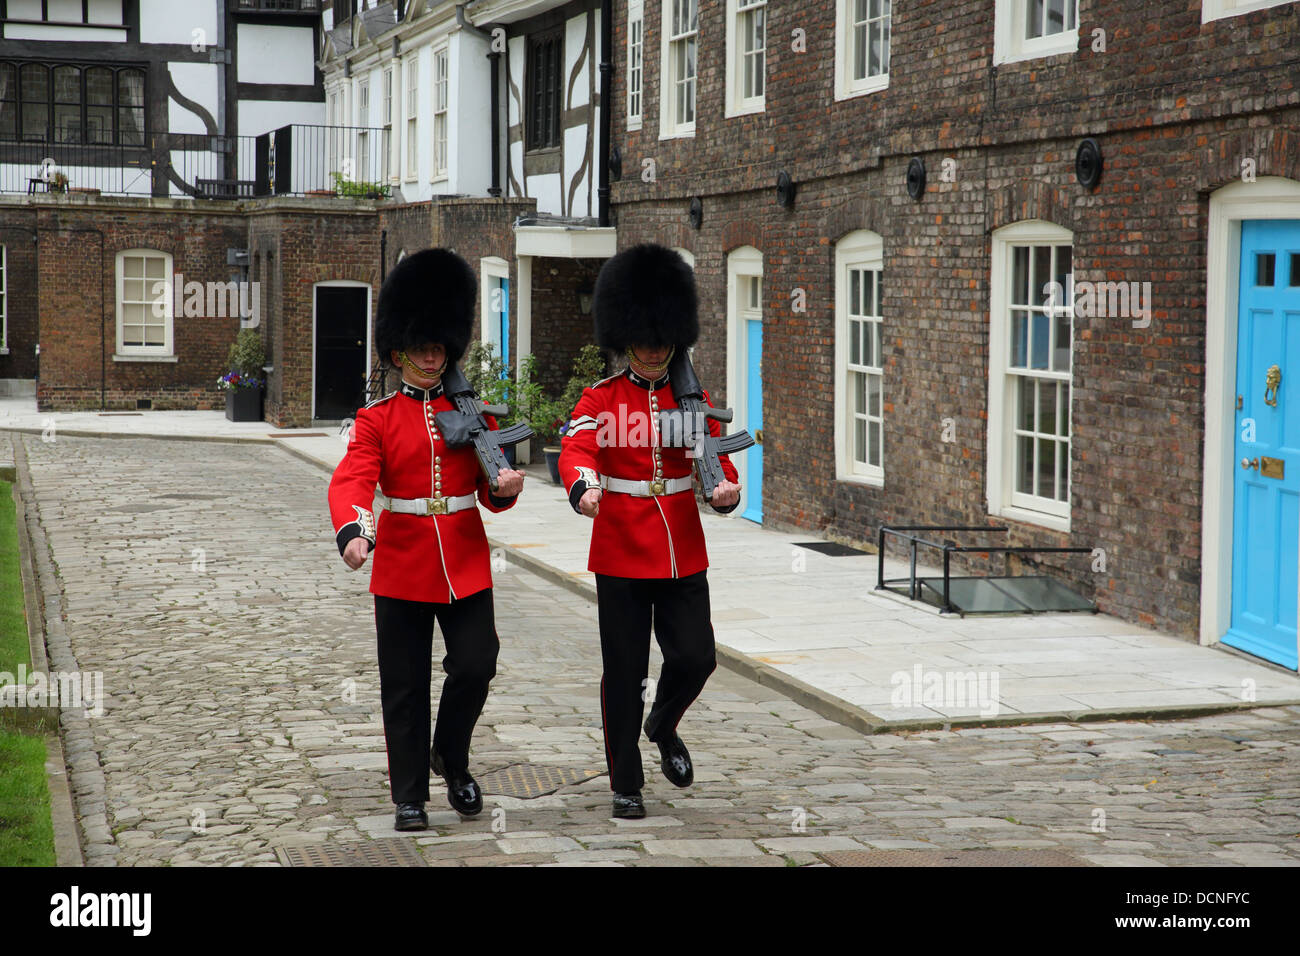 Two guards at Tower of London, England - Stock Image